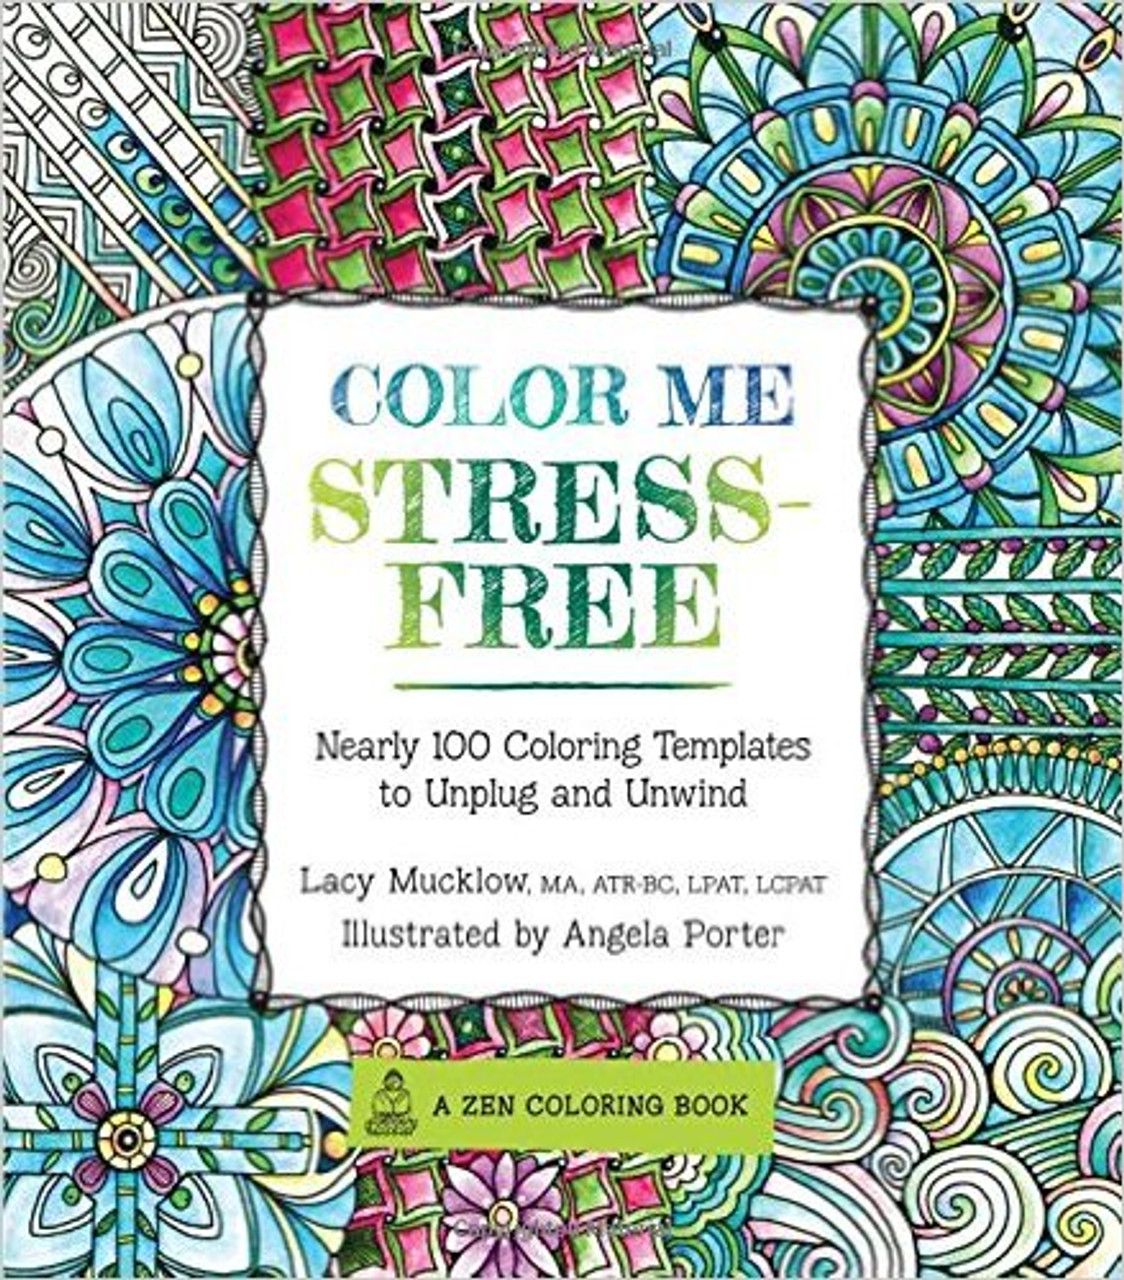 - Color Me Stress-Free: Nearly 100 Coloring Templates To Unplug And